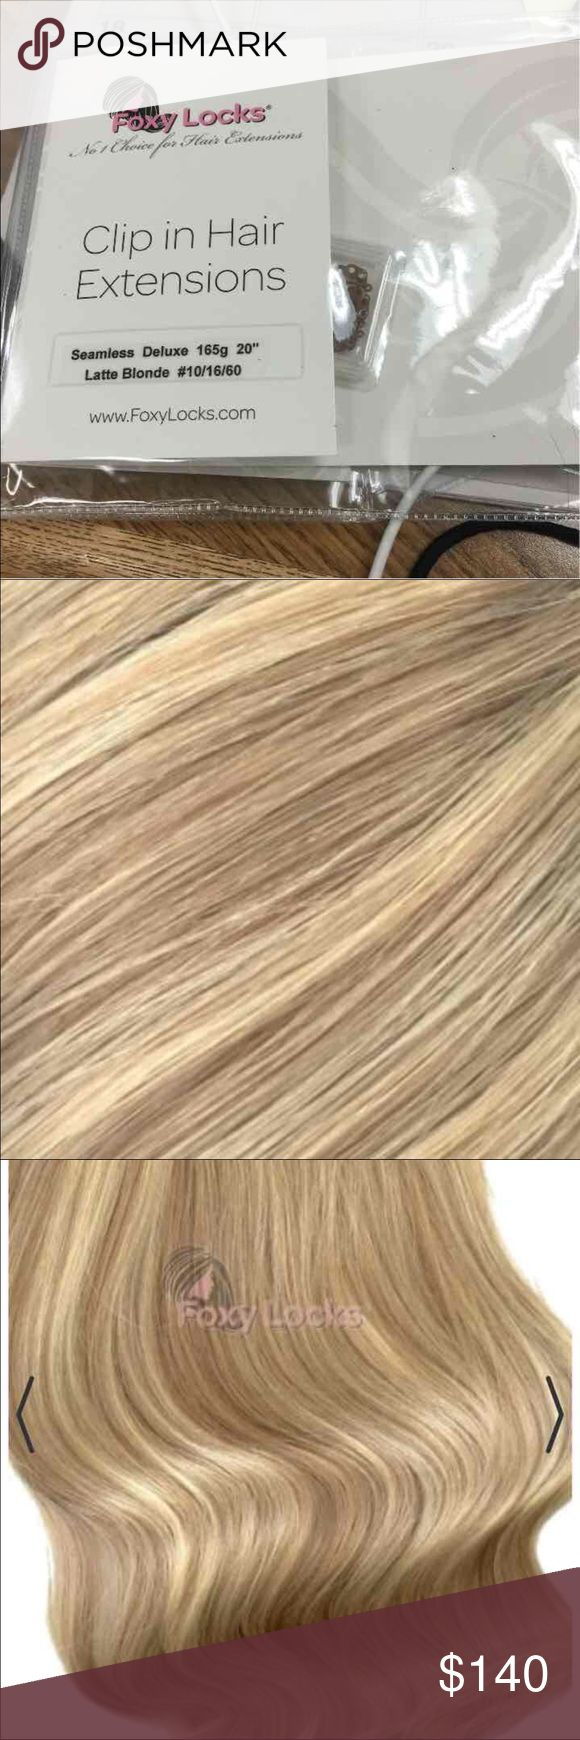 "FOXY LOCKS 165g hair extensions-latte blonde Latte Blonde, 165g, 20"" long,Seamless Clip In Made from Remy Human Hair 8 wefts (Full head):  One x 8"" wide with 4 clips One x 7"" wide with 4 clips Two x 6"" wide with 3 clips Two x 4"" wide with 2 clips Two x 1.3"" wide with 1 clip  Our Seamless wefts lay flat on your scalp making them virtually undetectable. Breakthrough Silicone band technology fuses & bonds every single strand of hair at the top of each weft reducing shedding and tangling…"